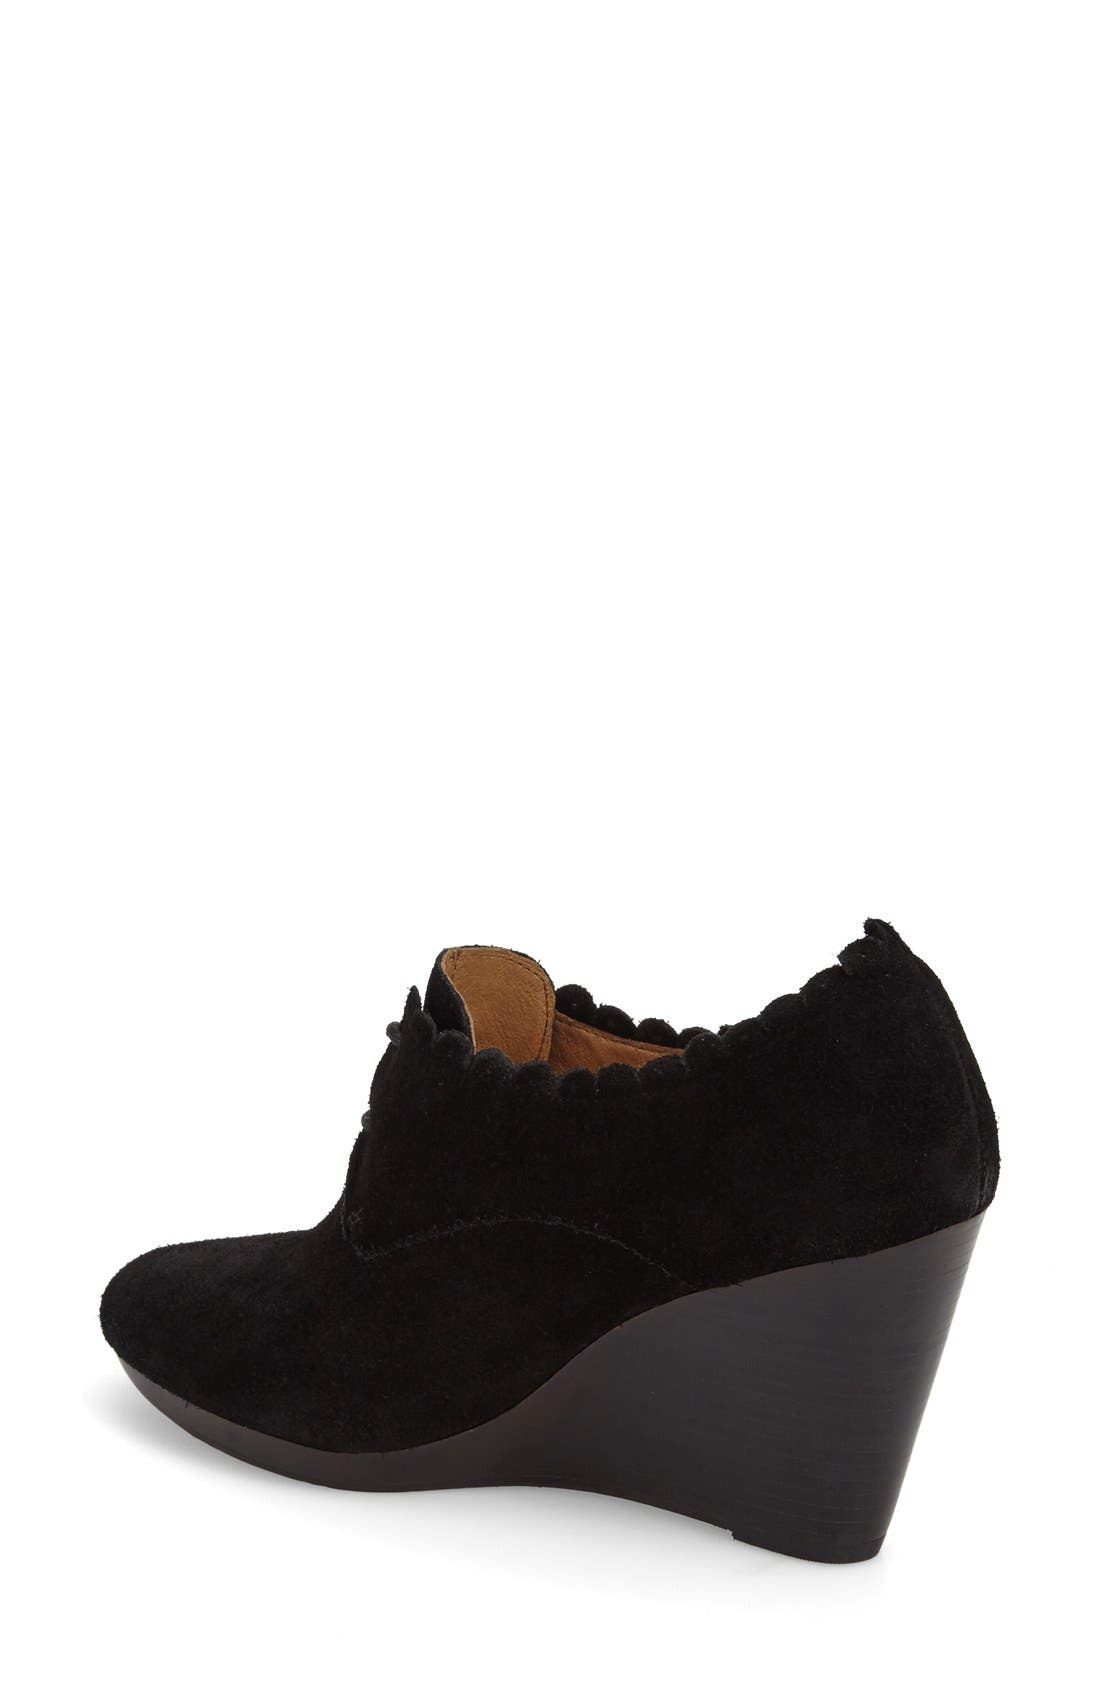 Alternate Image 2  - Jack Rogers 'Olivia' Wedge Bootie (Women)